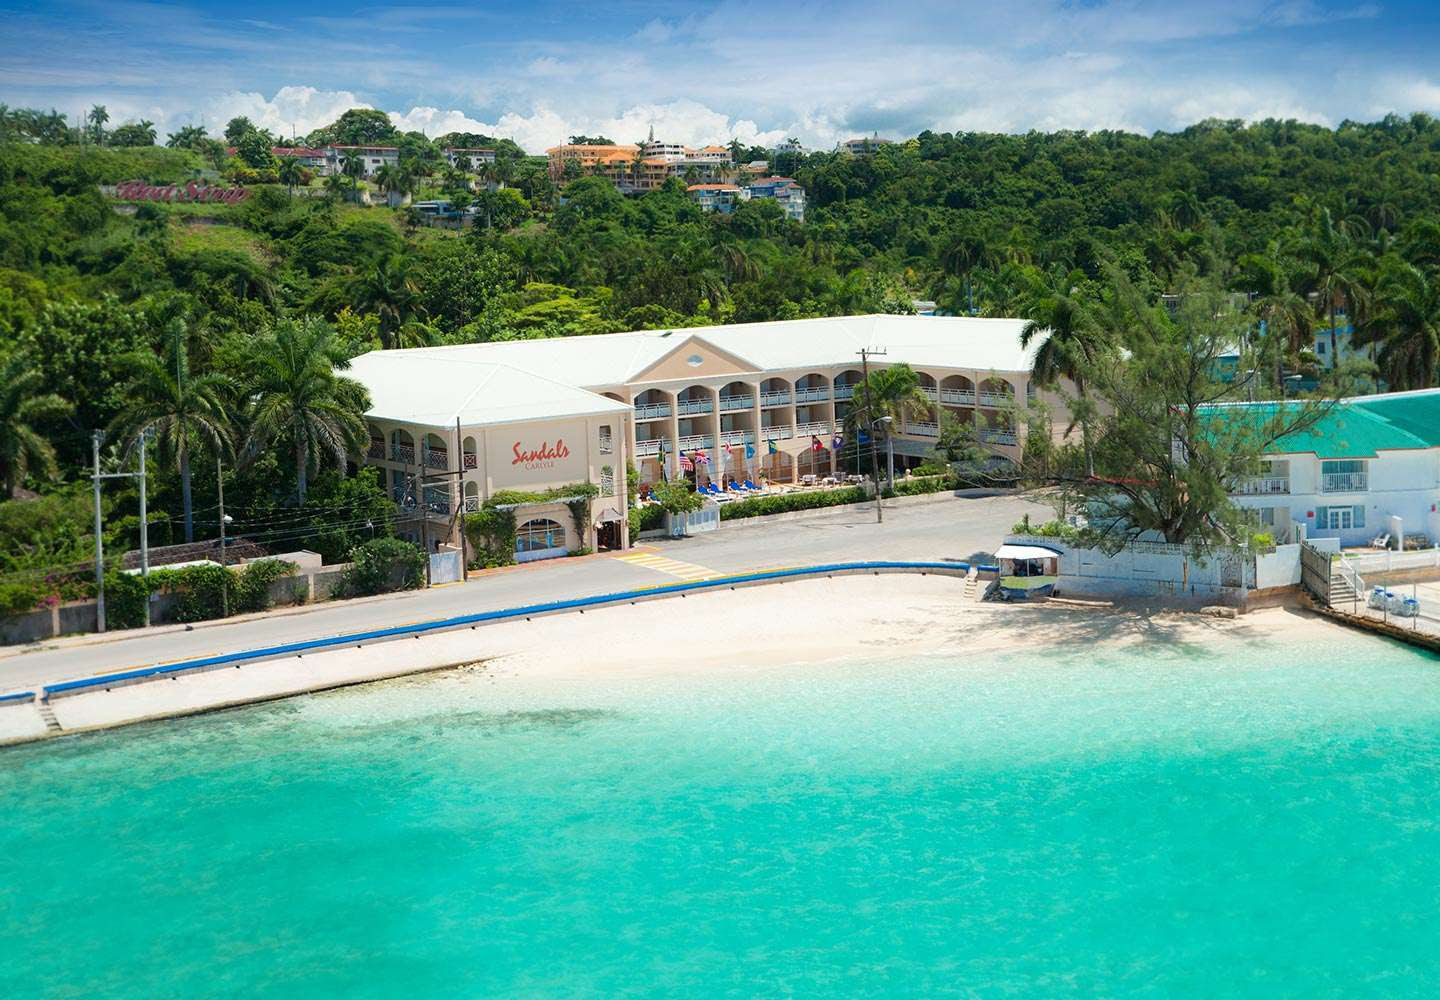 Sandals Exclusive Resorts in Jamaica travel pictures and